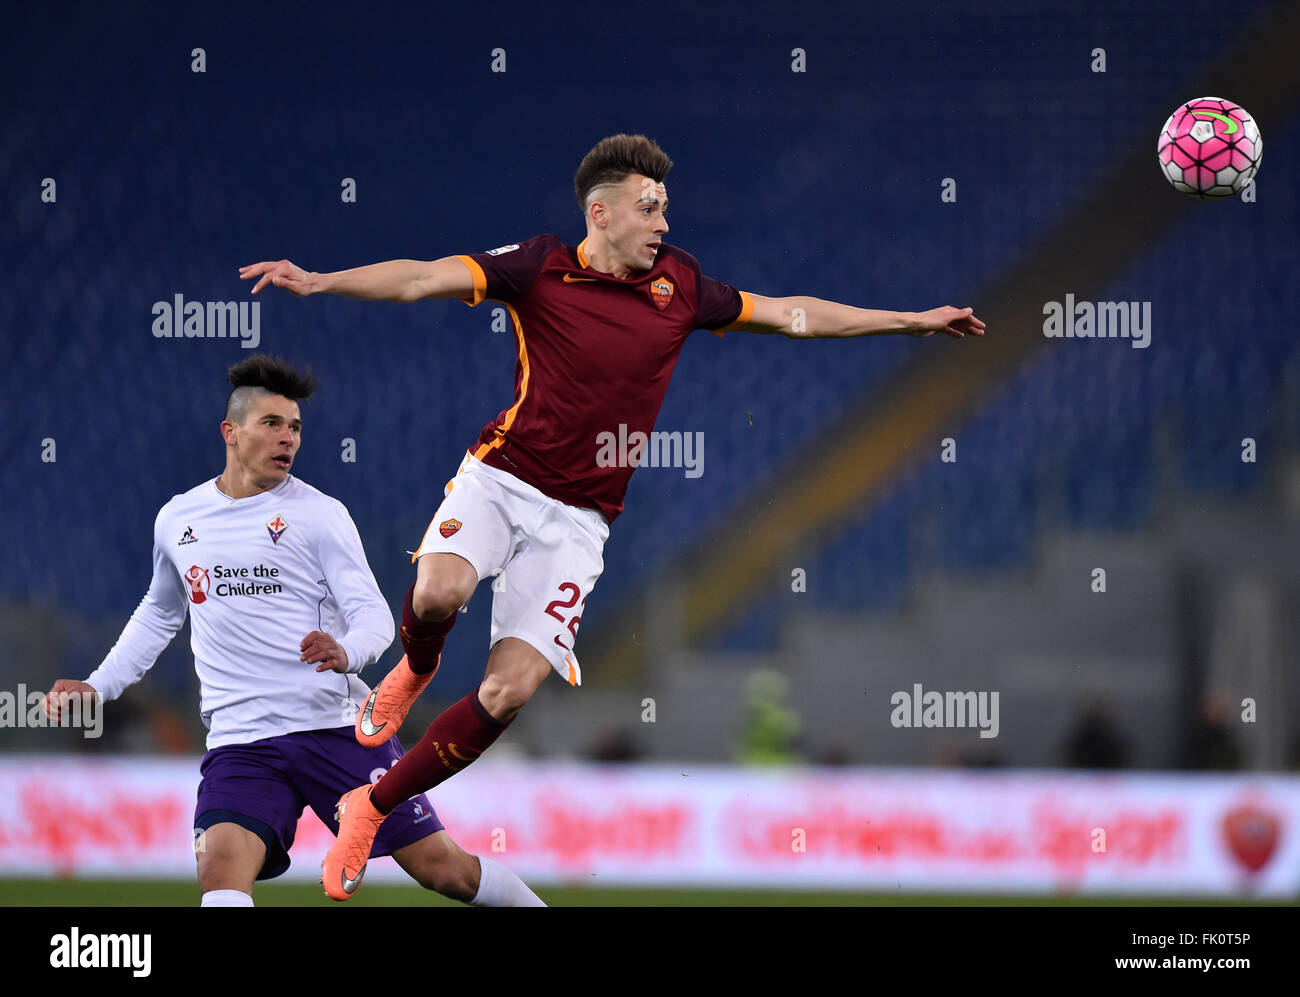 Rome, Italy. 4th Mar, 2016. Roma's El Sharaawy (R) jumps for the ball during the Italian Serie A football match Stock Photo